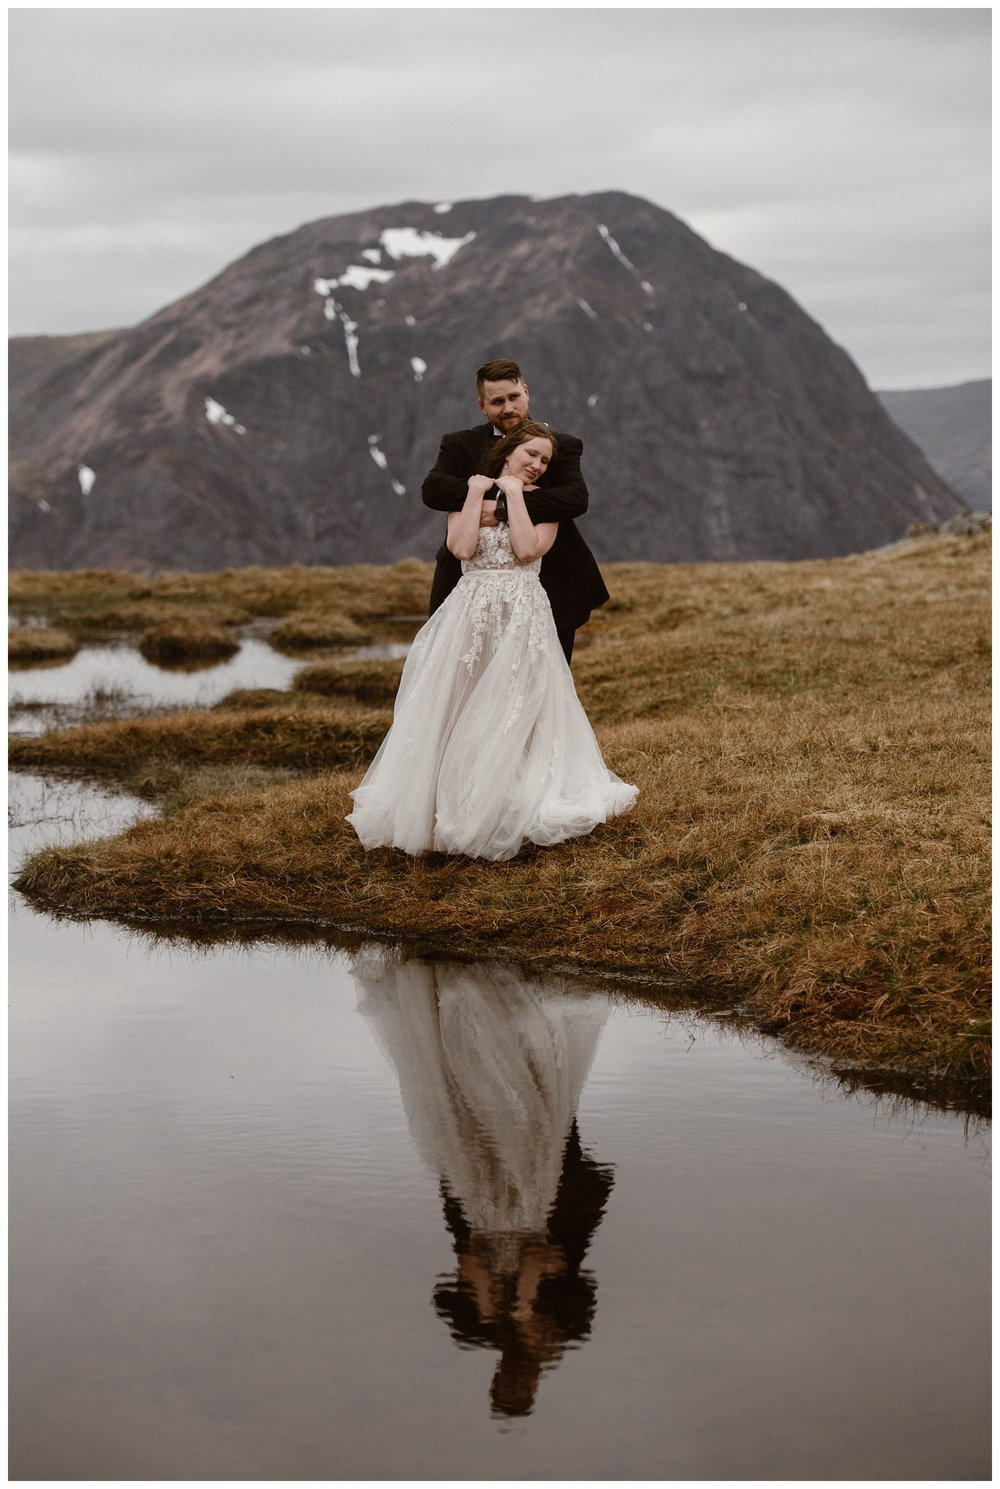 Elissa and Daniel embrace and are reflected in the water a loch in the Scottish Highlands during their destination elopement. Photo by Maddie Mae, Adventure Instead.